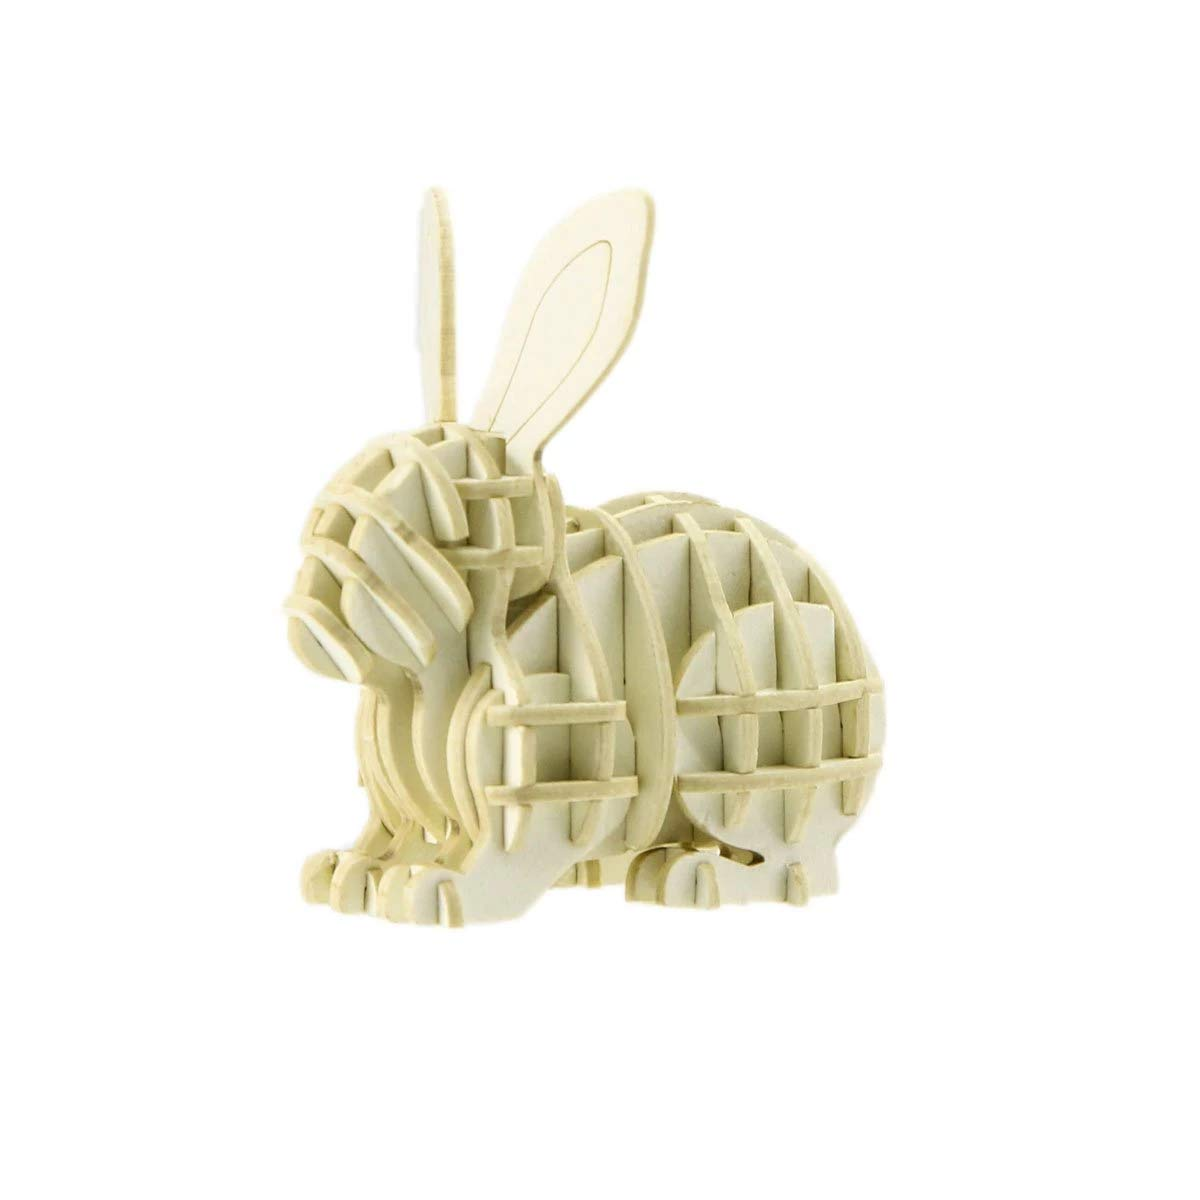 JIGZLE Rabbit Paper 3D Puzzle - Laser Cut Miniature Animal Craft Kit for Kids and Adults - Birthday Gift and Party Favor for Puzzle and Origami Paper Craft Enthusiasts